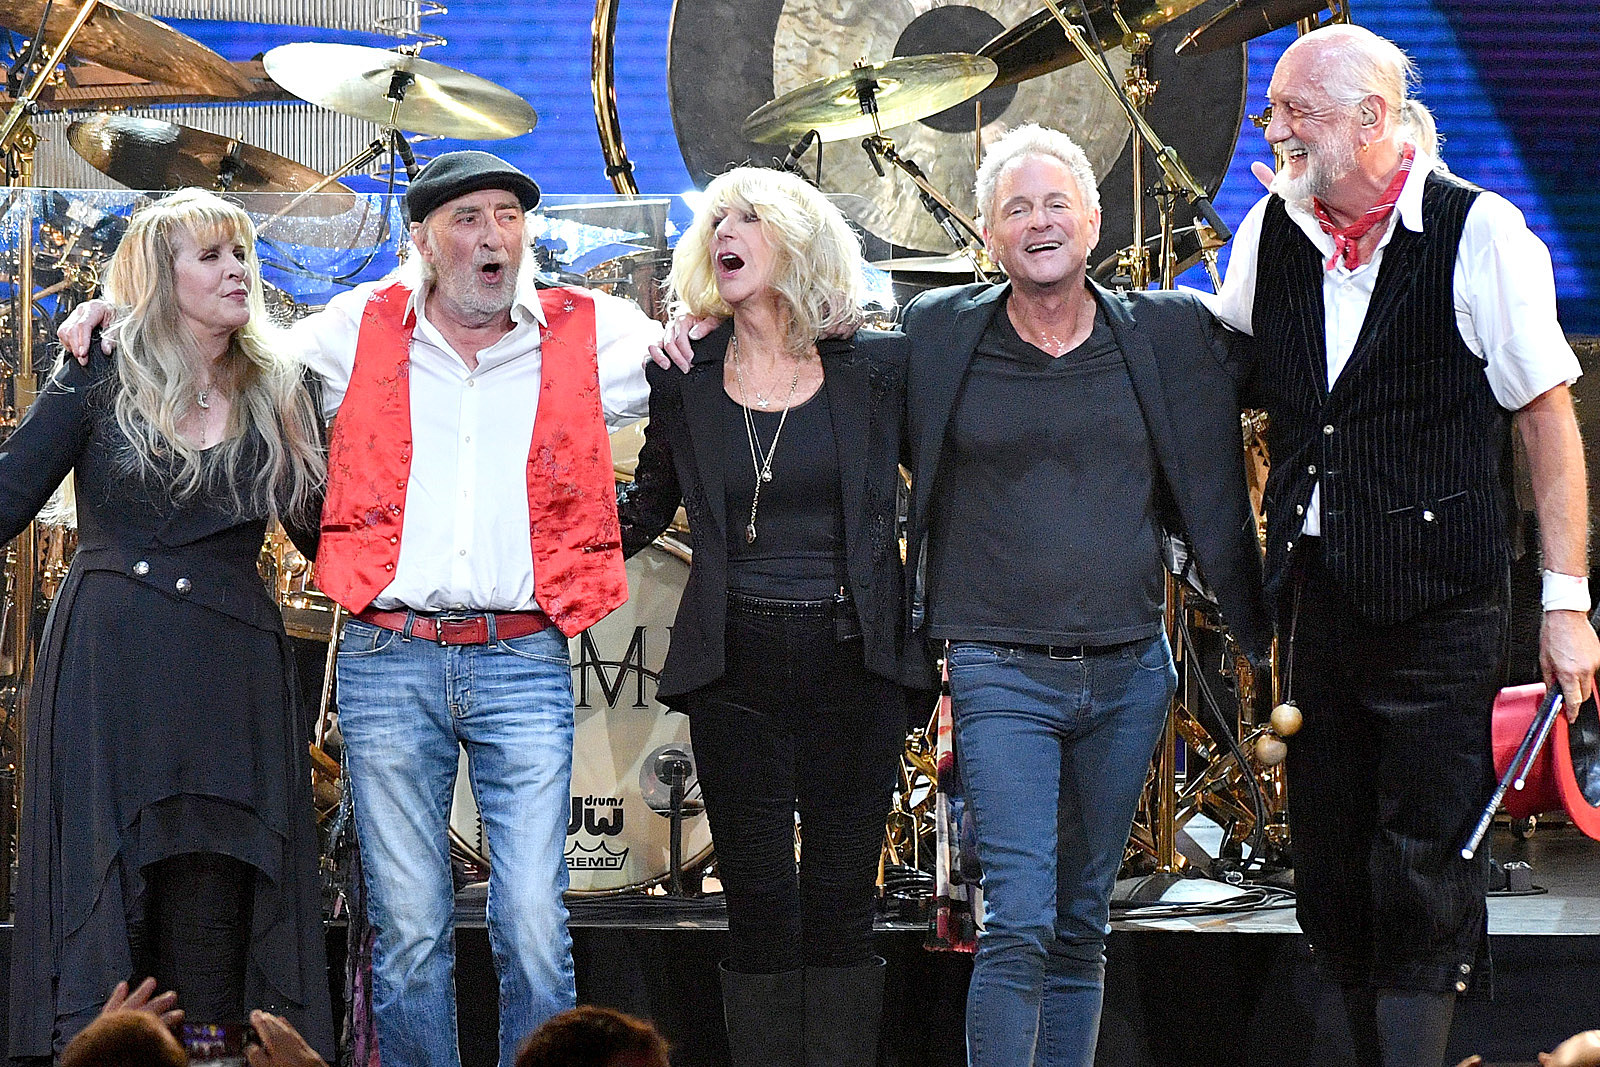 Fleetwood Mac Split With Lindsey Buckingham Was 'Only Route'